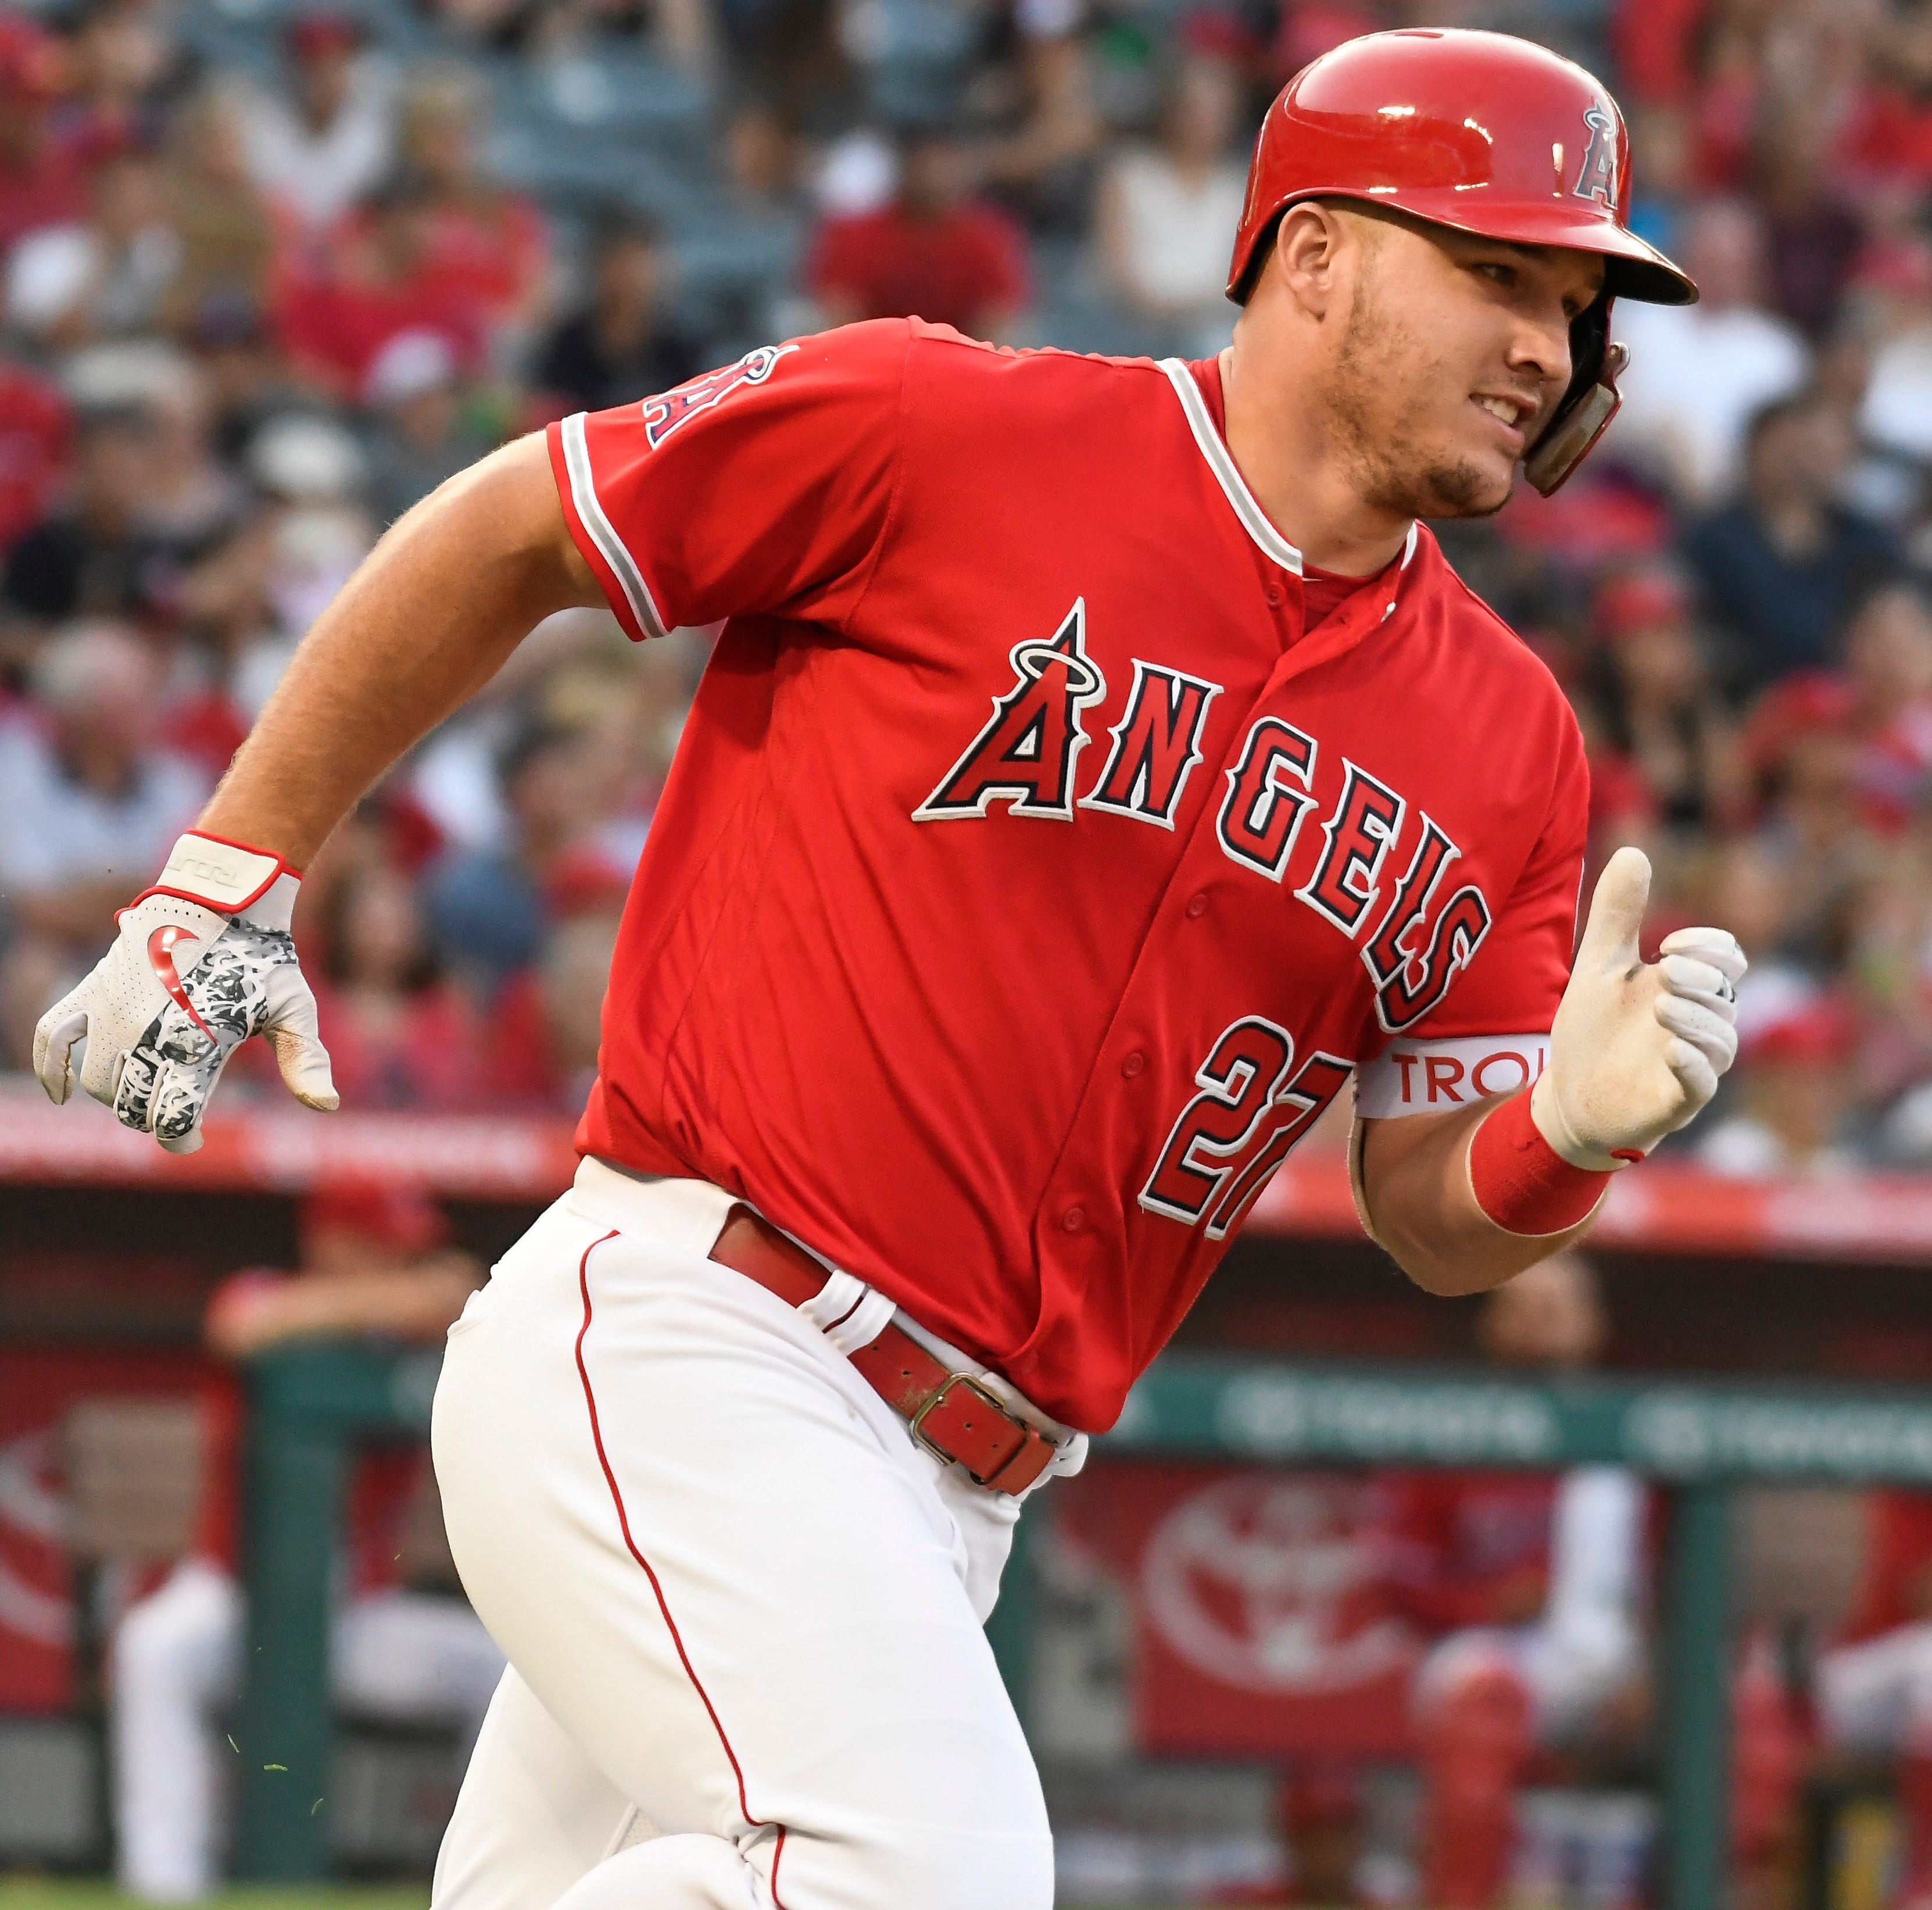 Neighbors briefs: Mike Trout, CCREA trips, suicide prevention, yard sale, GriefShare